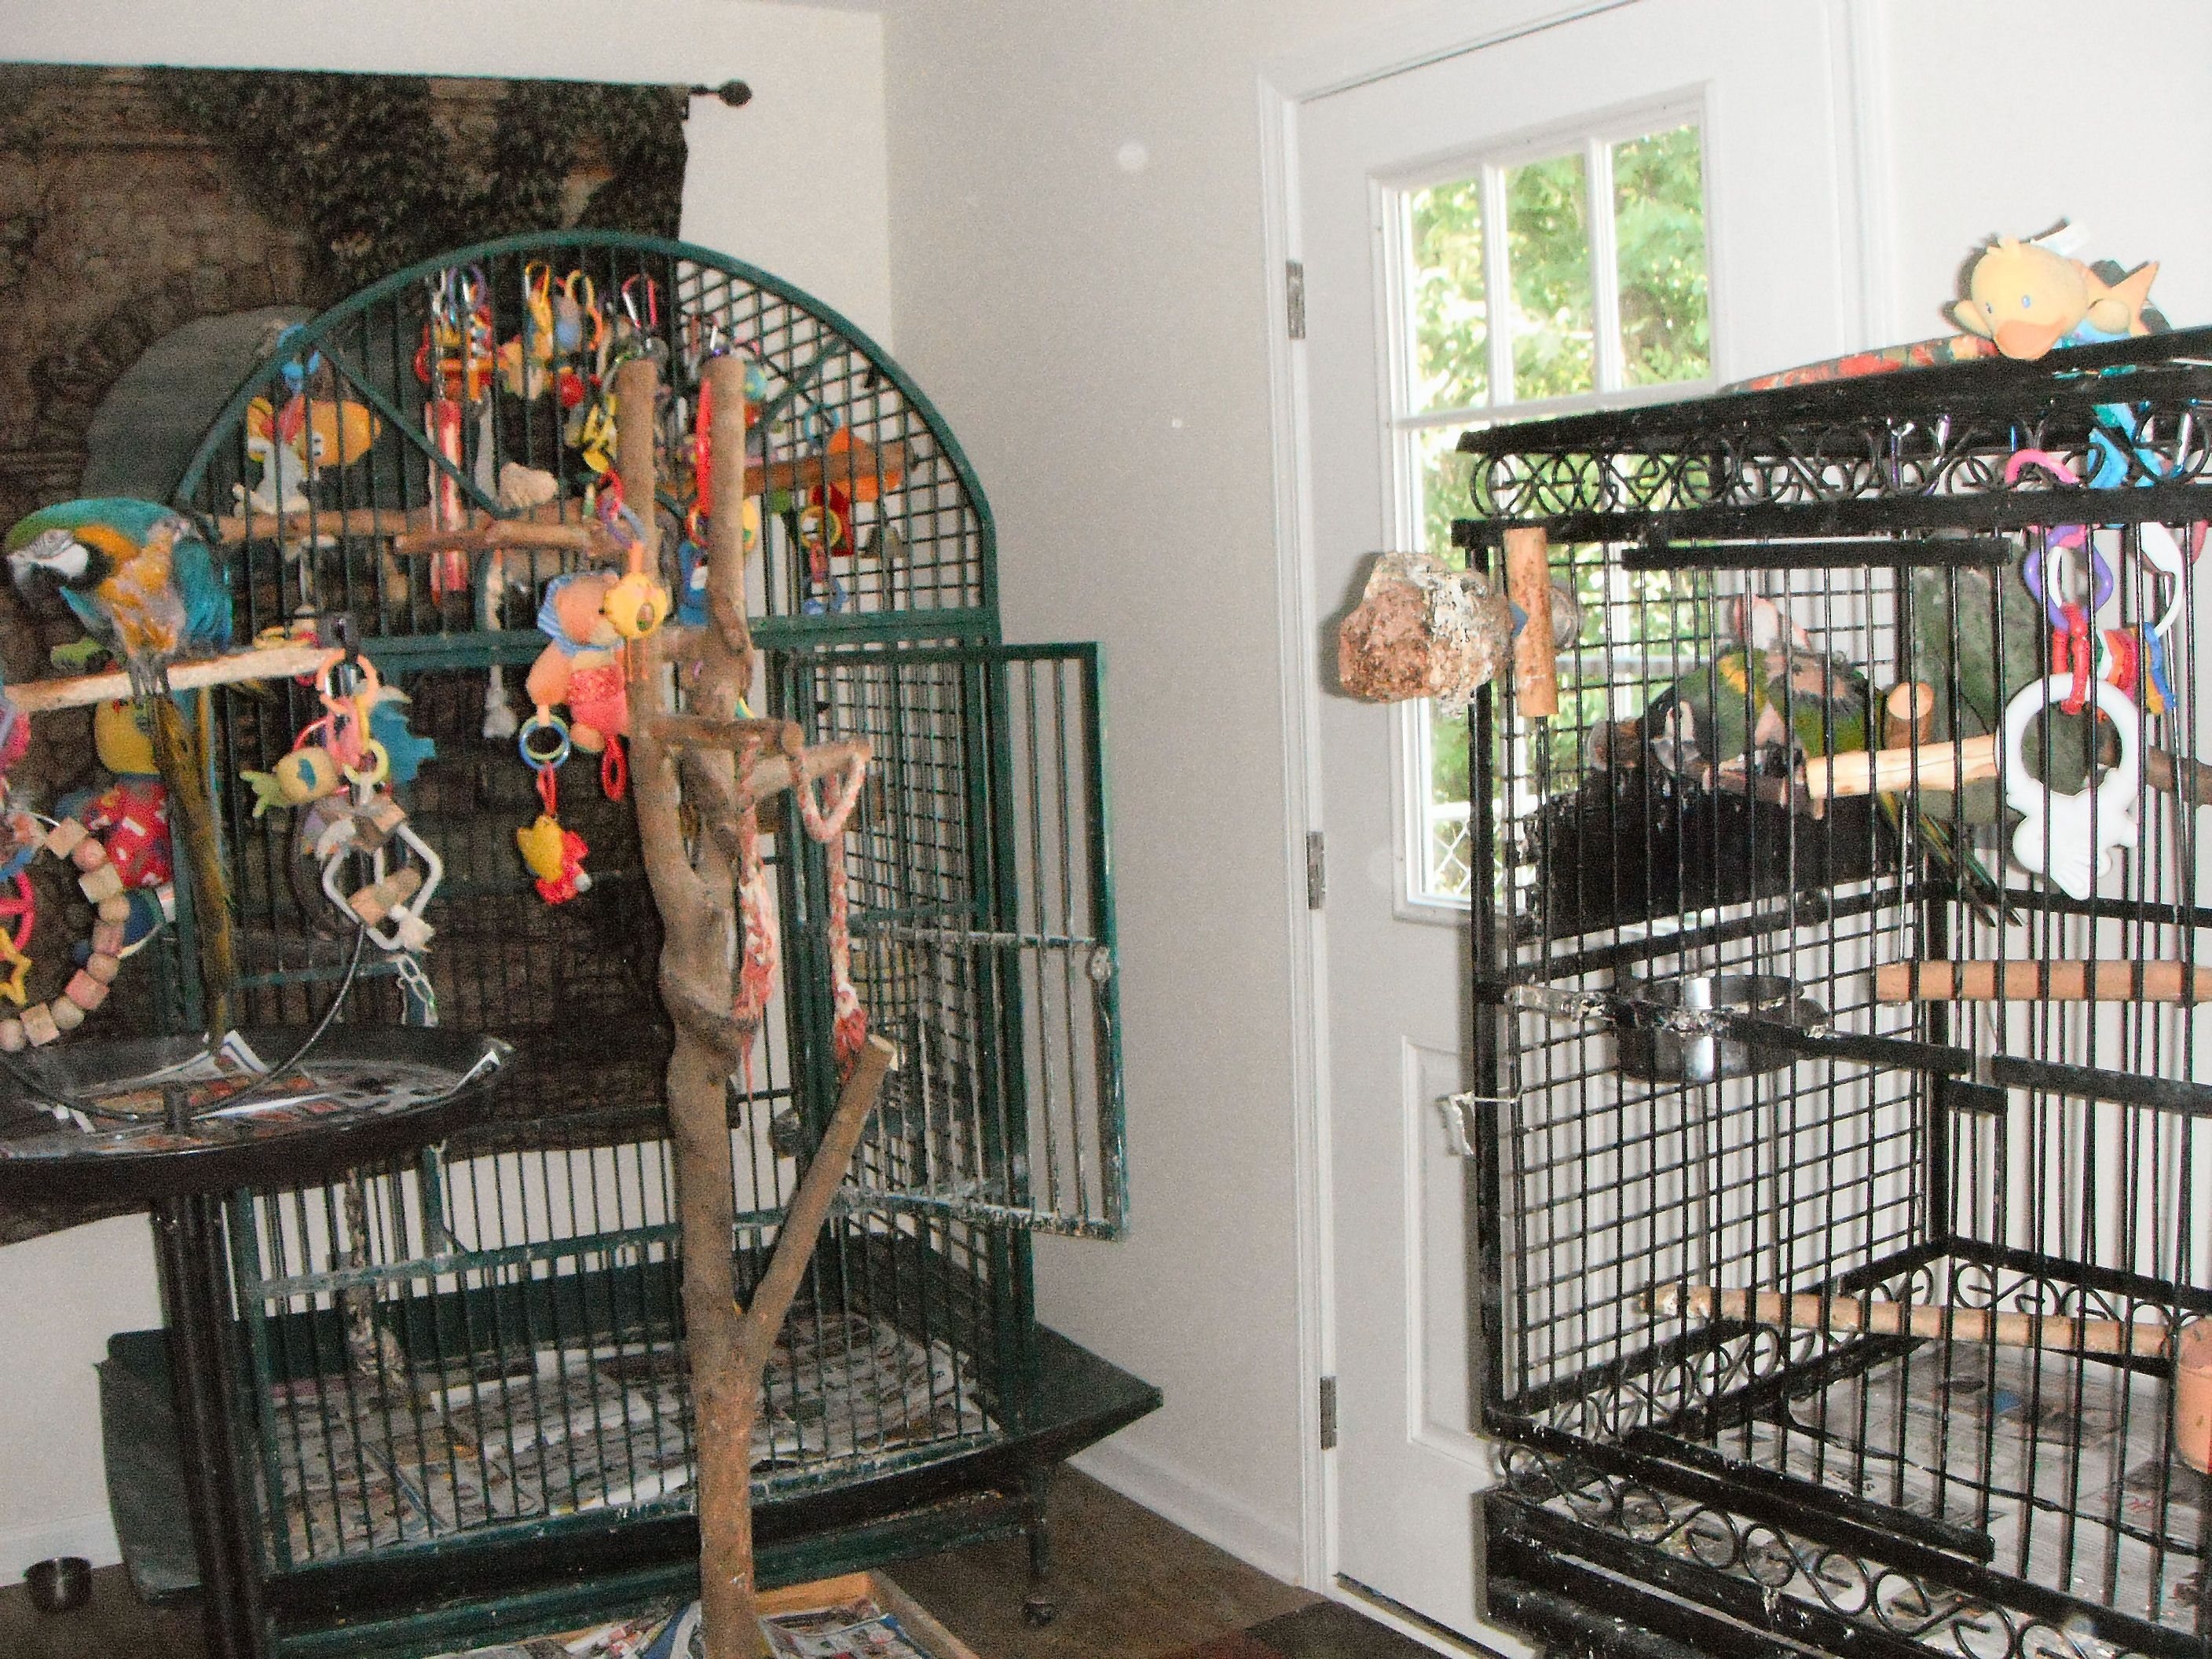 my birdroom!..we have total of 4 birds.Messy room but that's the normal! Love my birds!